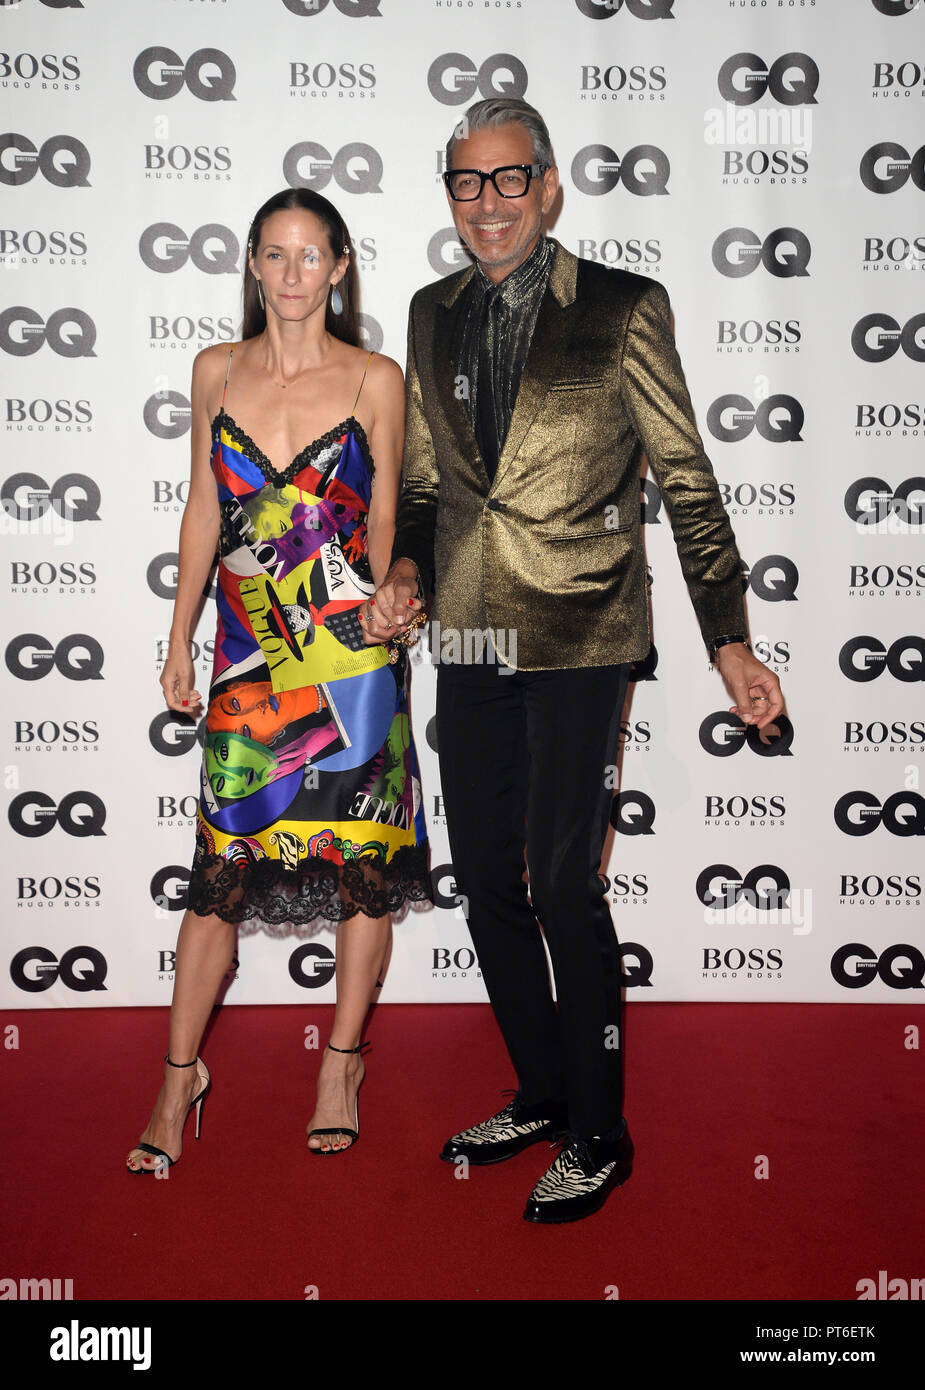 GQ Men Of The Year Awards at The Tate Modern  Featuring: Jeff Goldblum Where: London, United Kingdom When: 05 Sep 2018 Credit: Tony Oudot/WENN Stock Photo